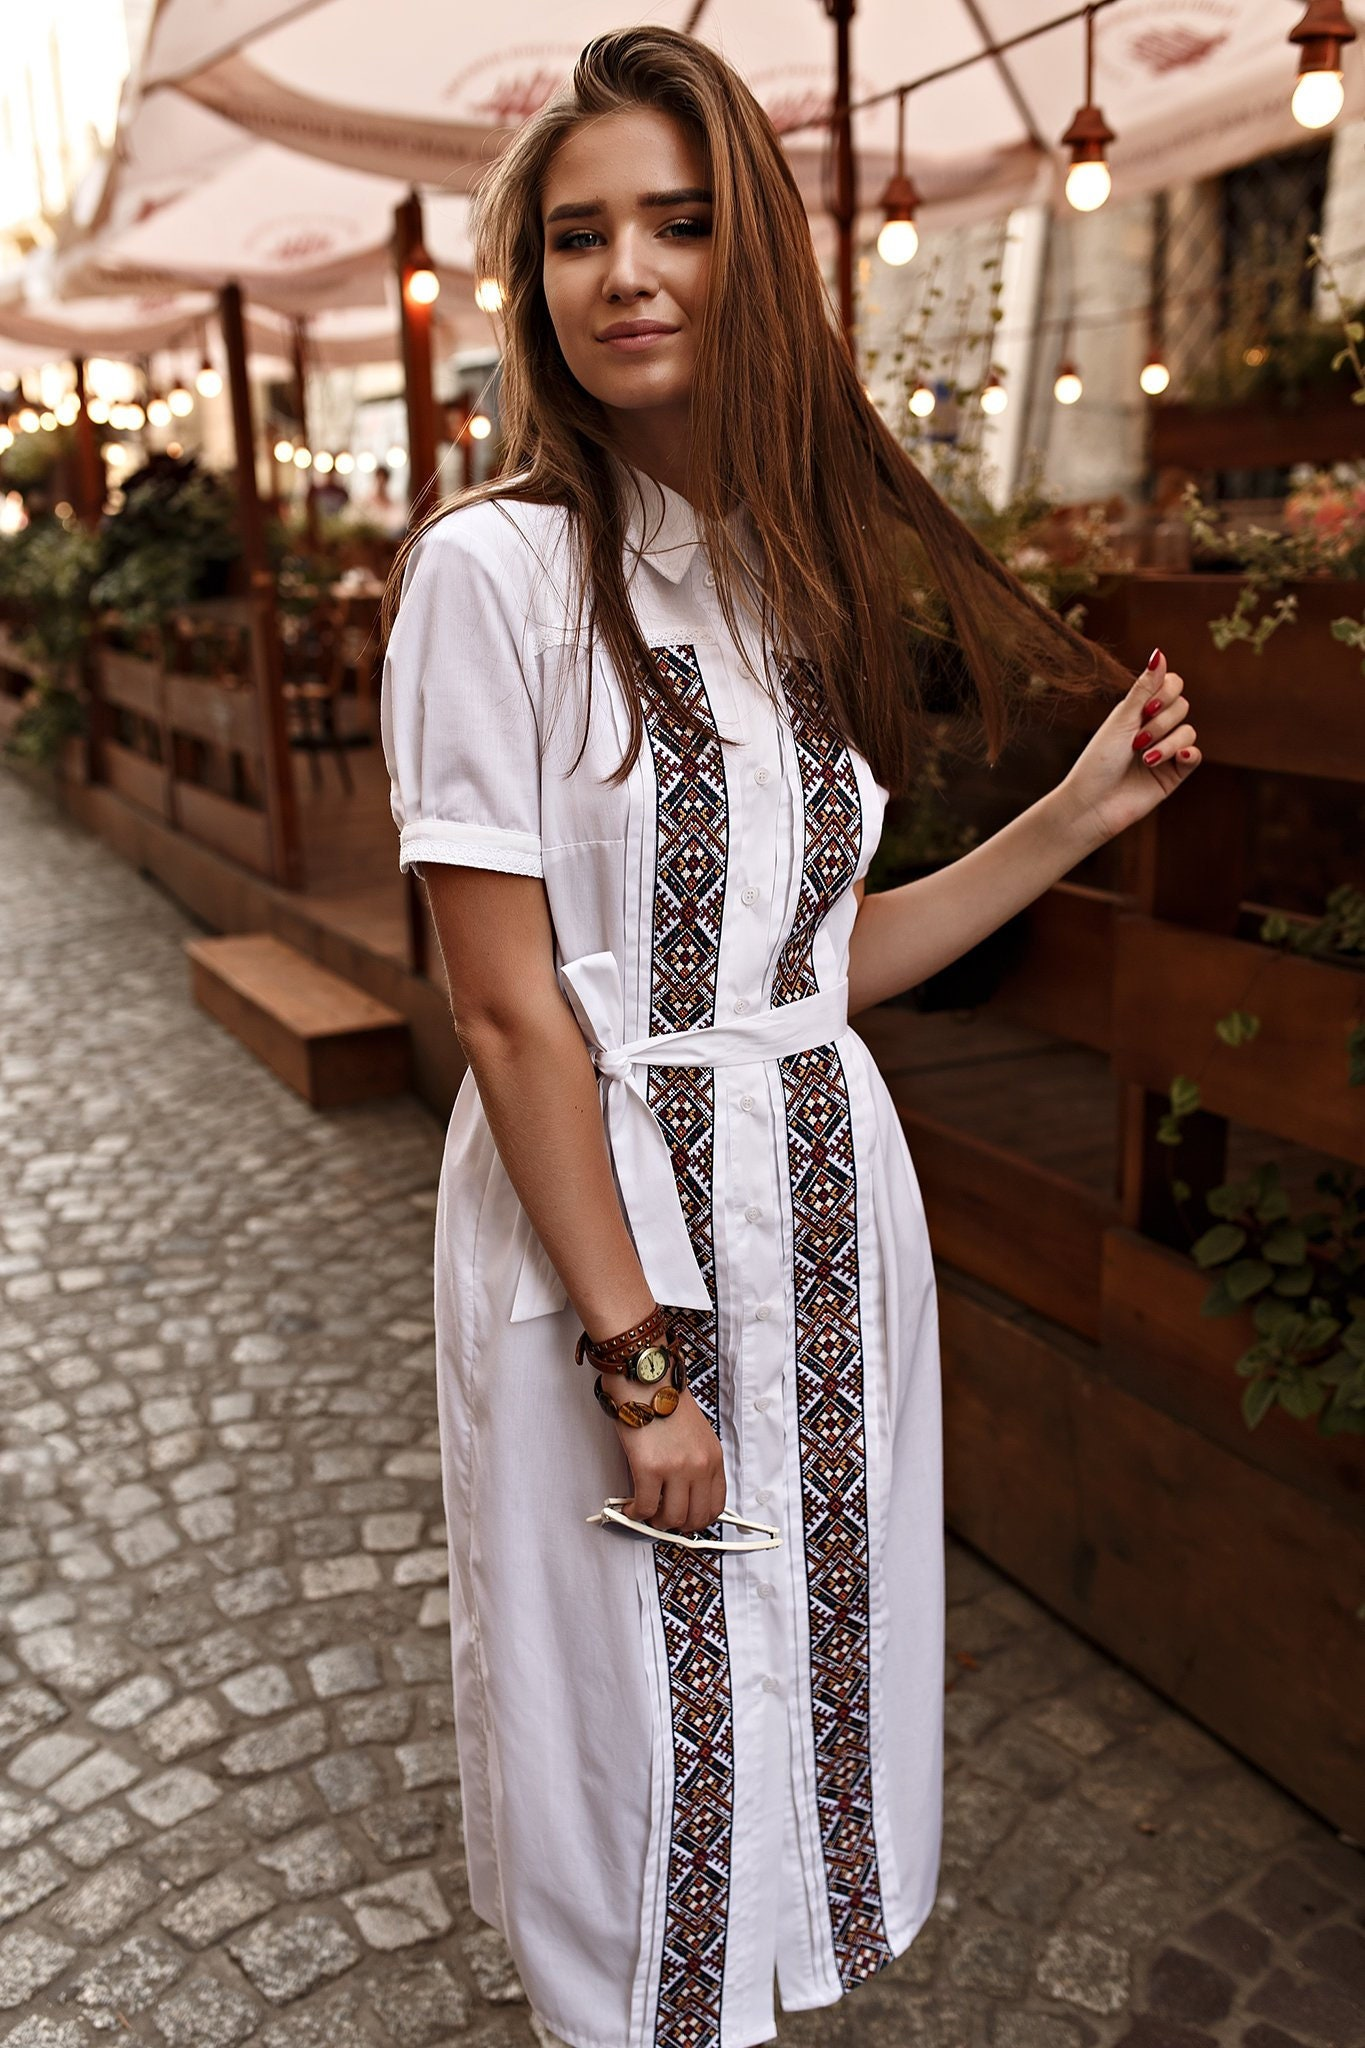 Details about  /Ukrainian Vyshyvanka Dress.Traditional Embroidered dress.Gift for Her Christmas